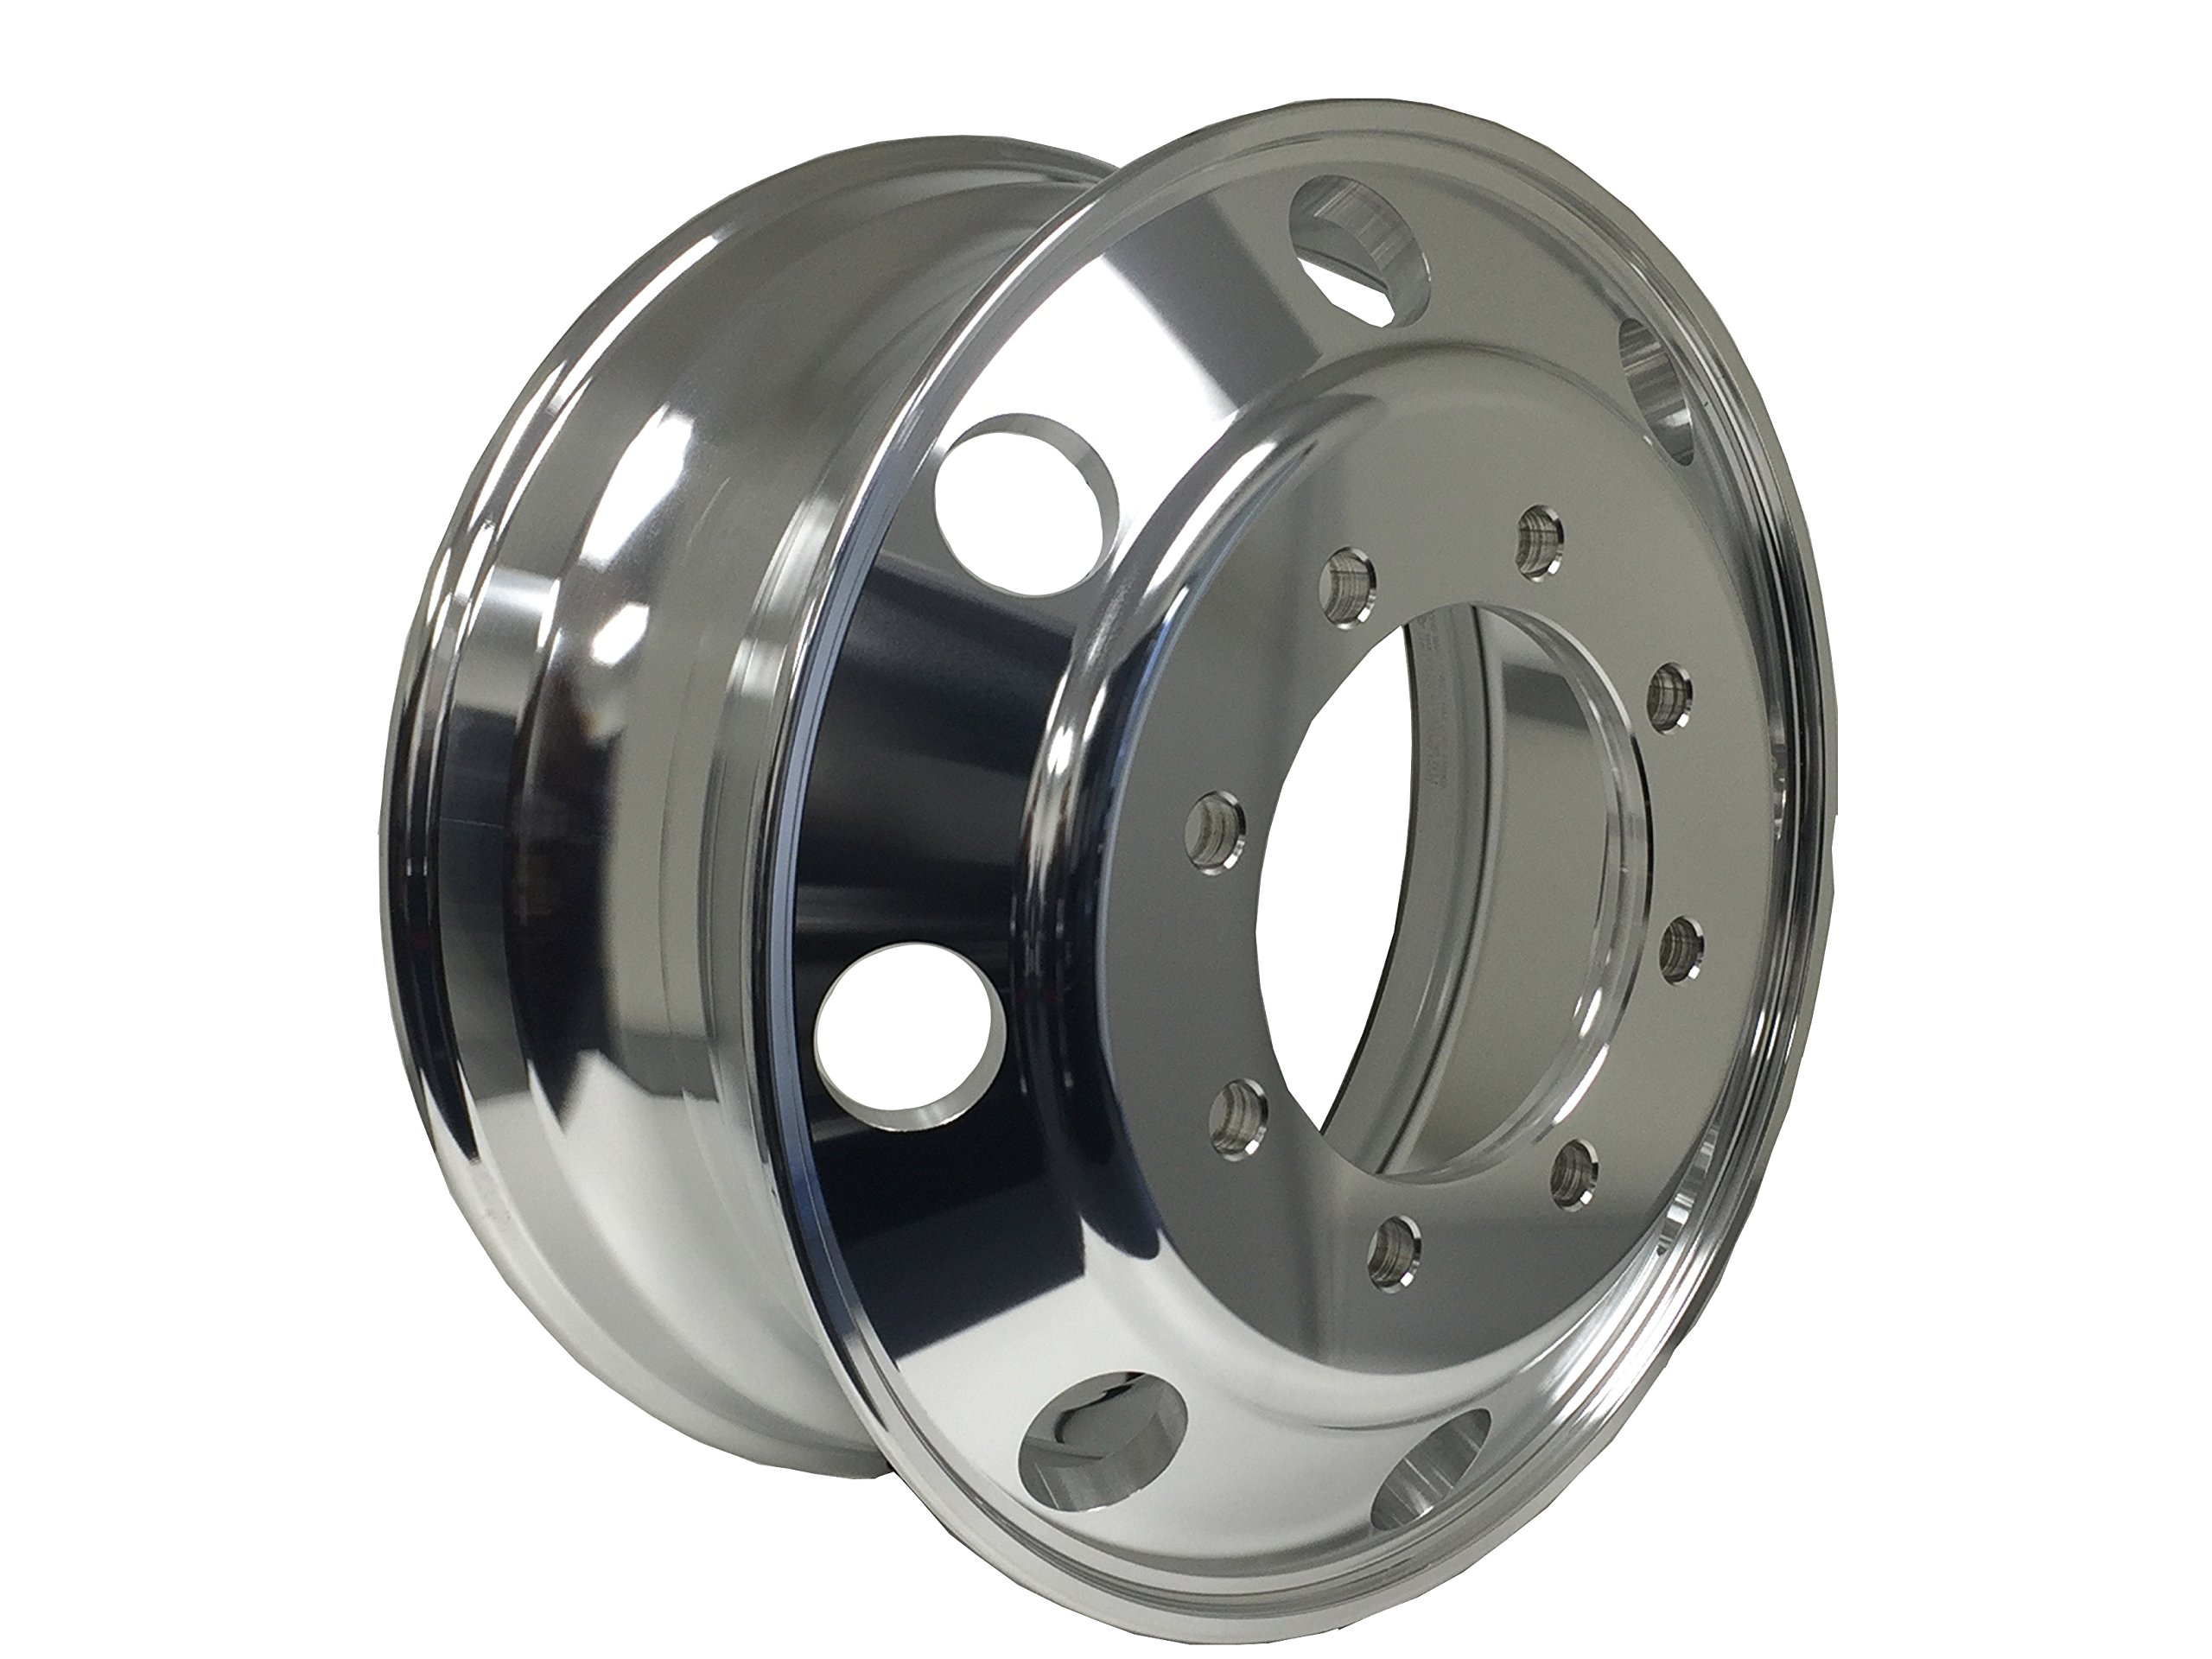 MOTORHOME A227506 Aluminum Wheels 22.5 x 7.5 Hub Pilot PCD:8X275 ''ALCOA STYLE'' (Both side Polish Finished-for All Position)